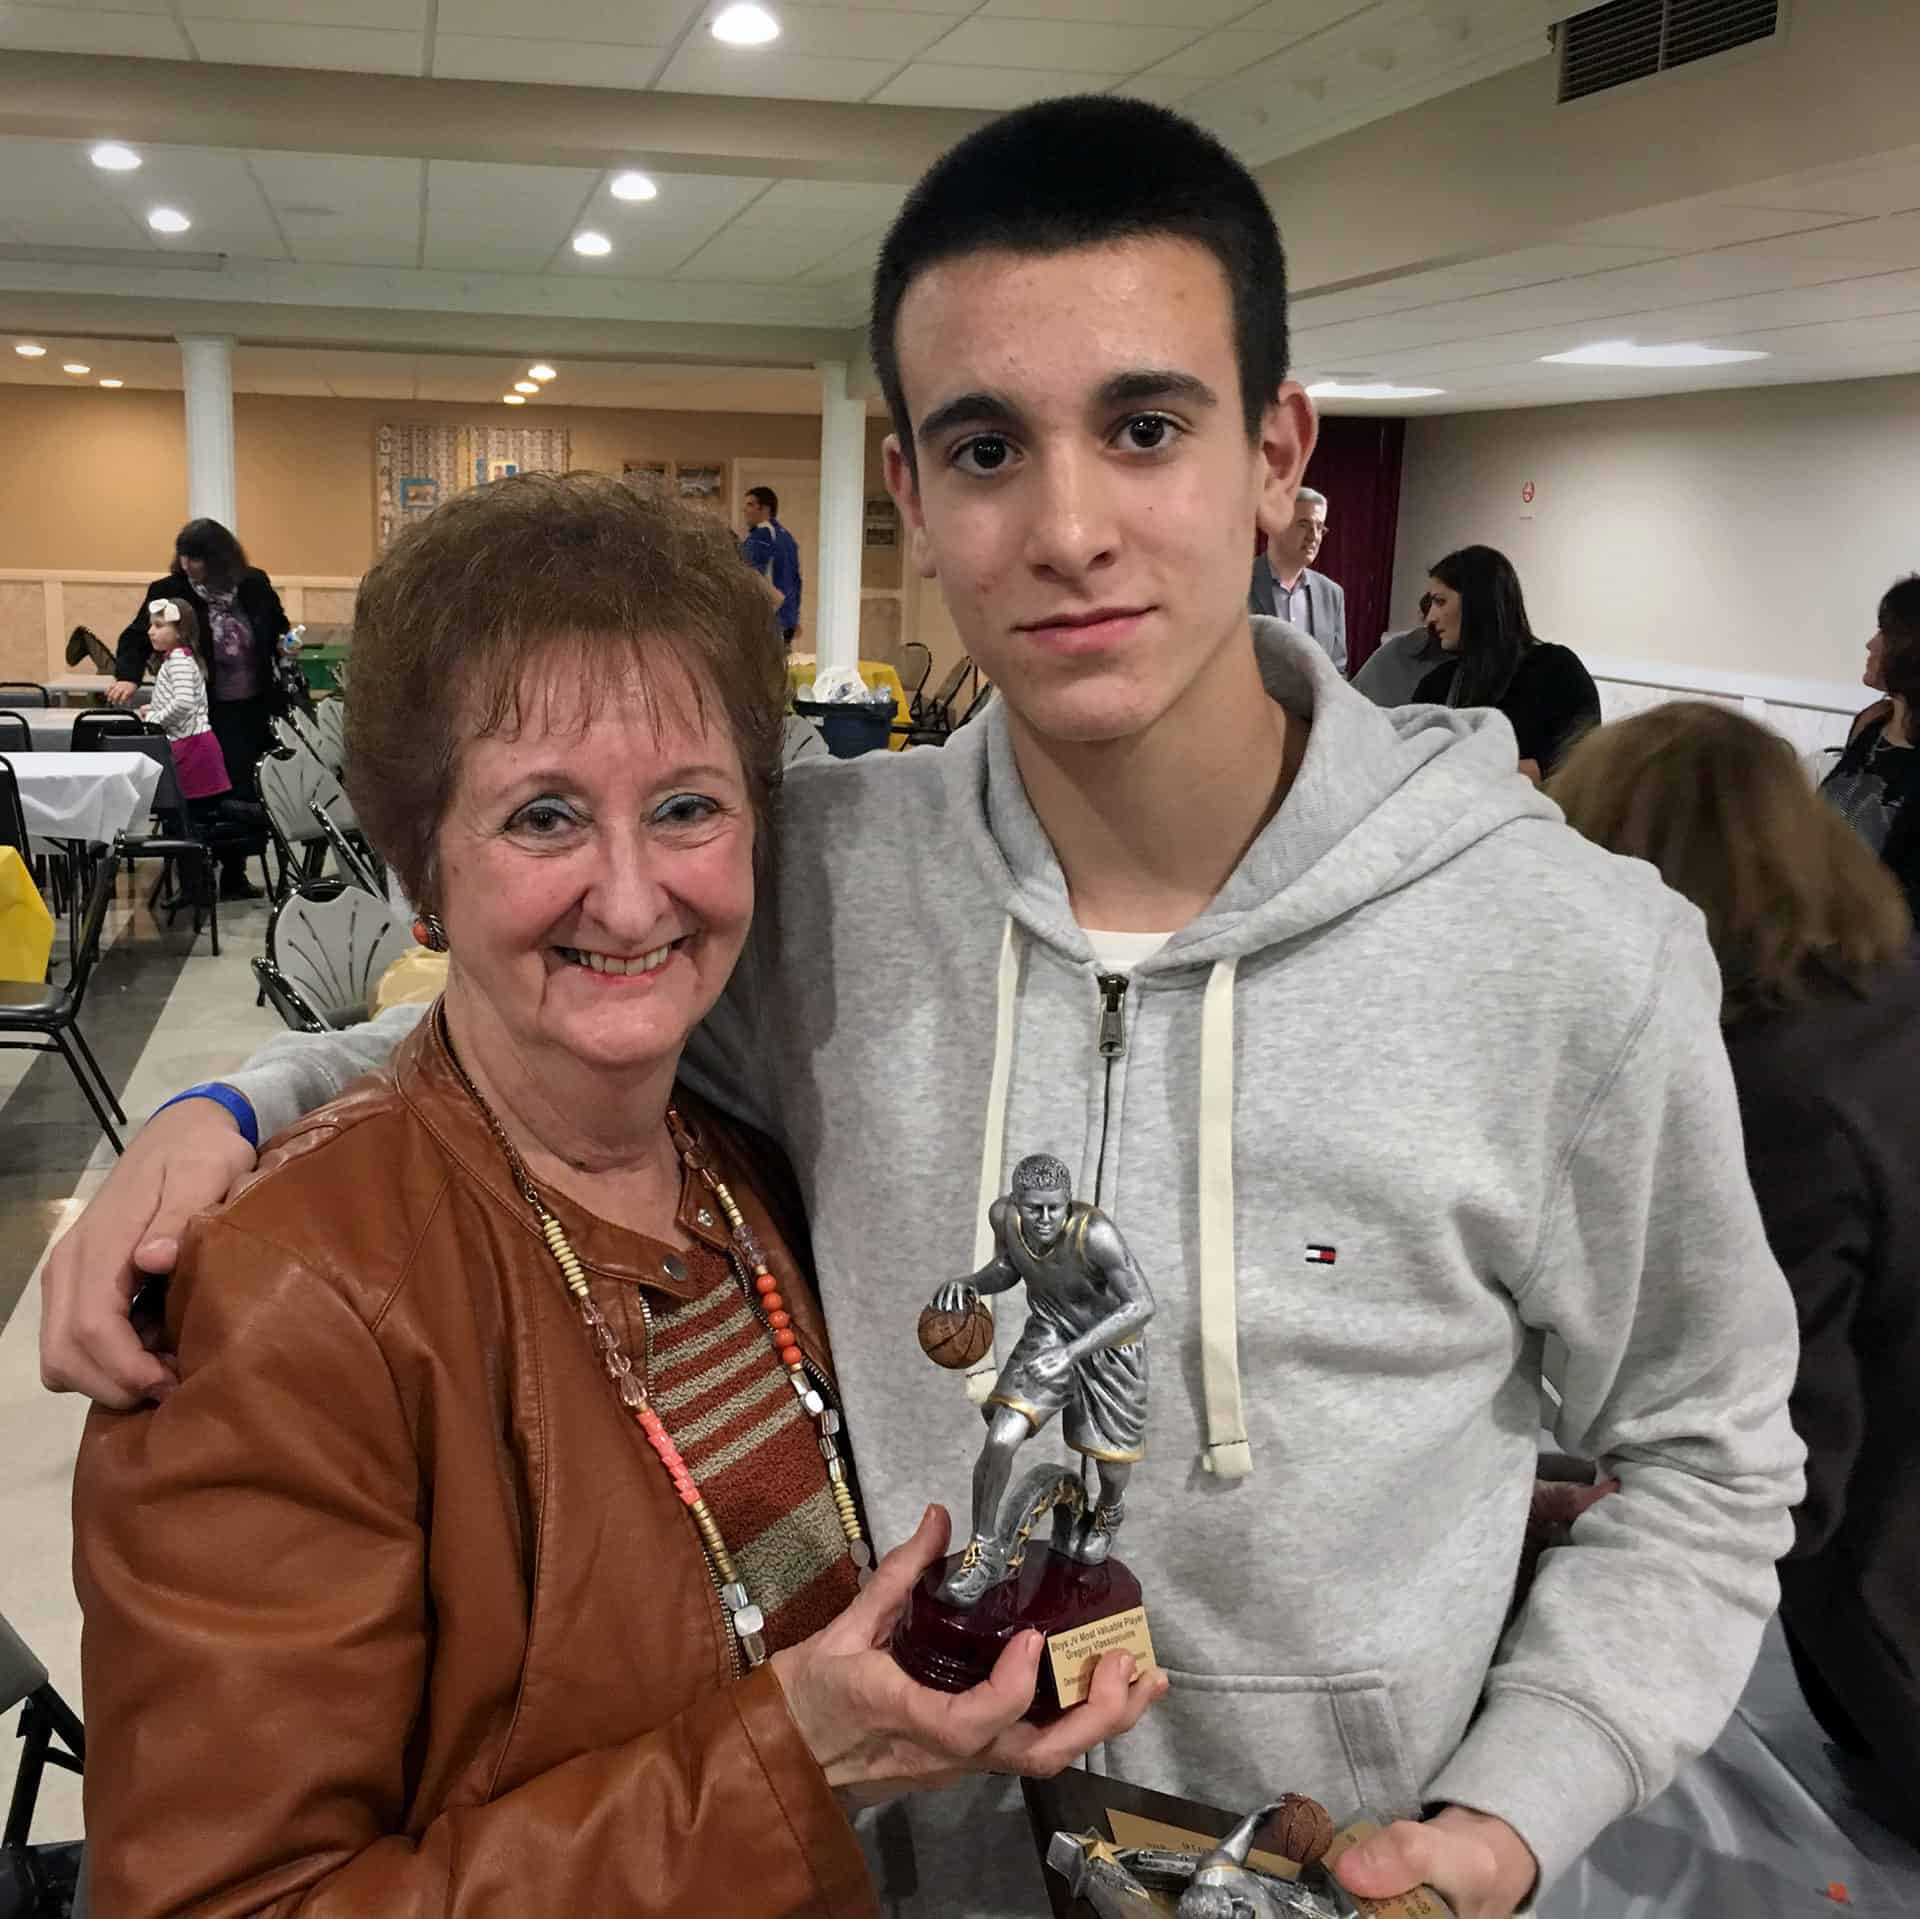 Greg Vlassopoulos with his grandmother at the GOYA Awards Ceremony holding the MVP trophy